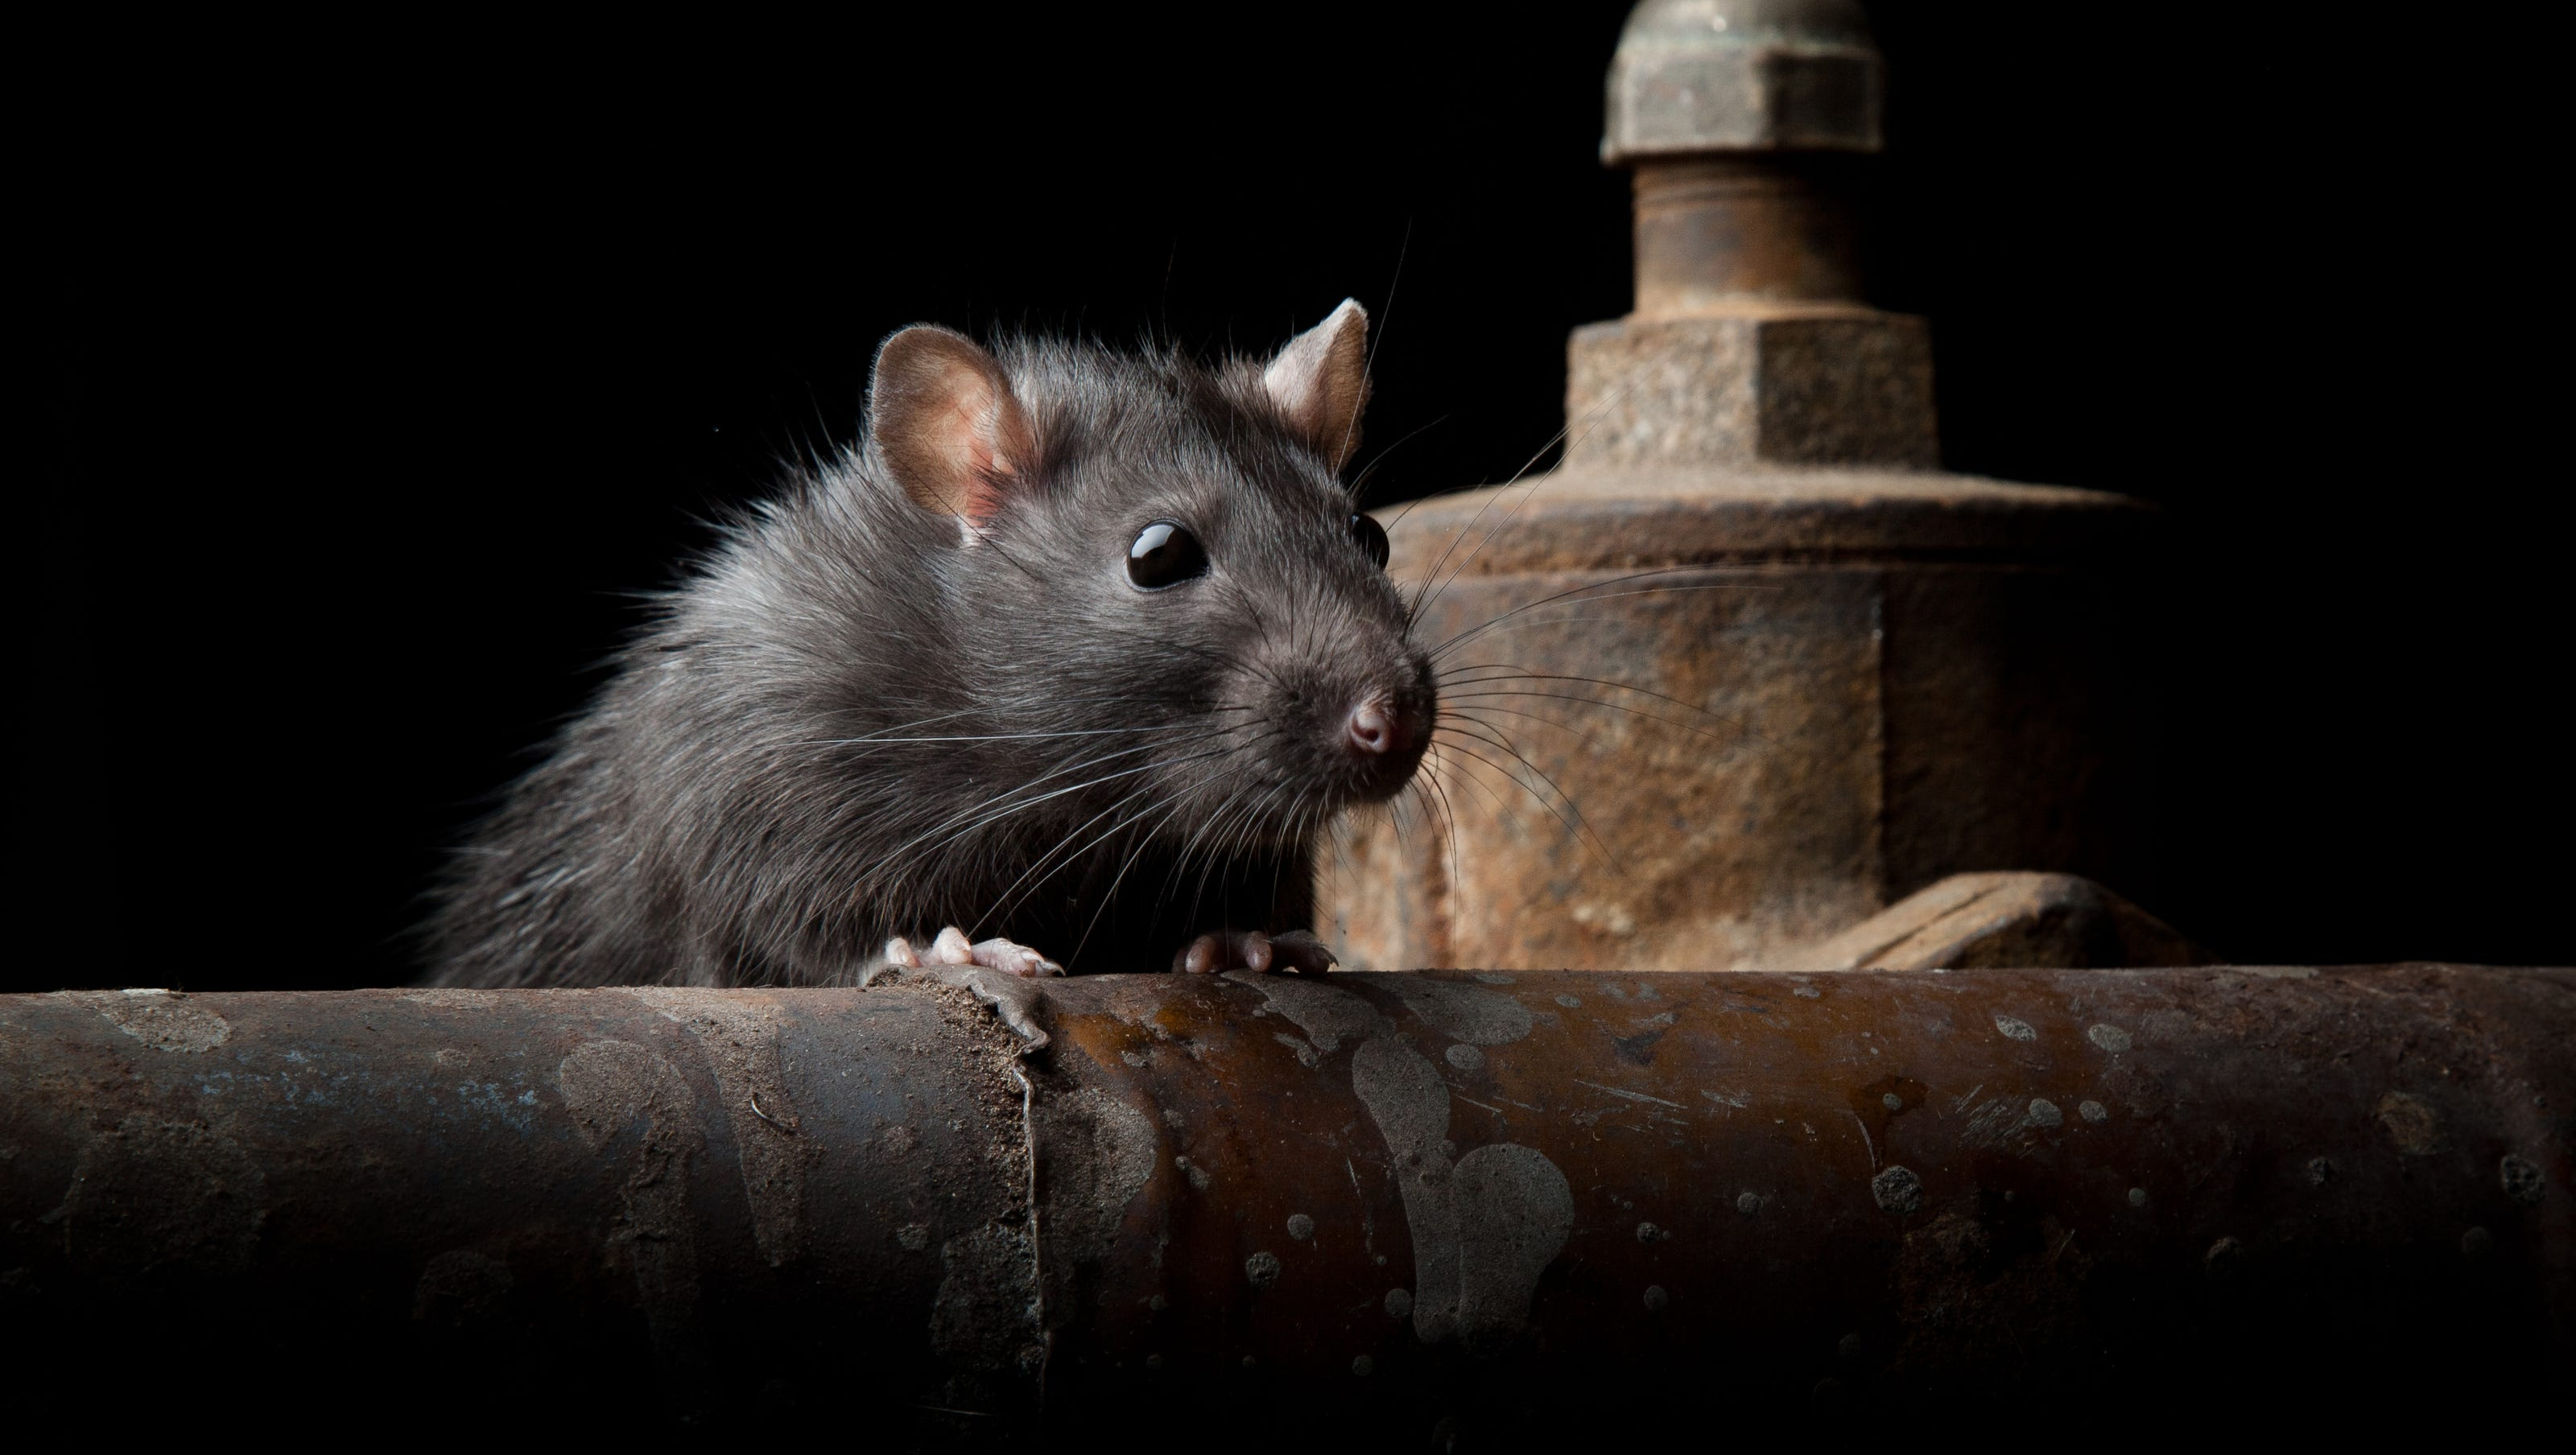 How To Keep Mice From Chewing Wires | Rats Eat Through Your Car Wiring Here S Why It S Happening